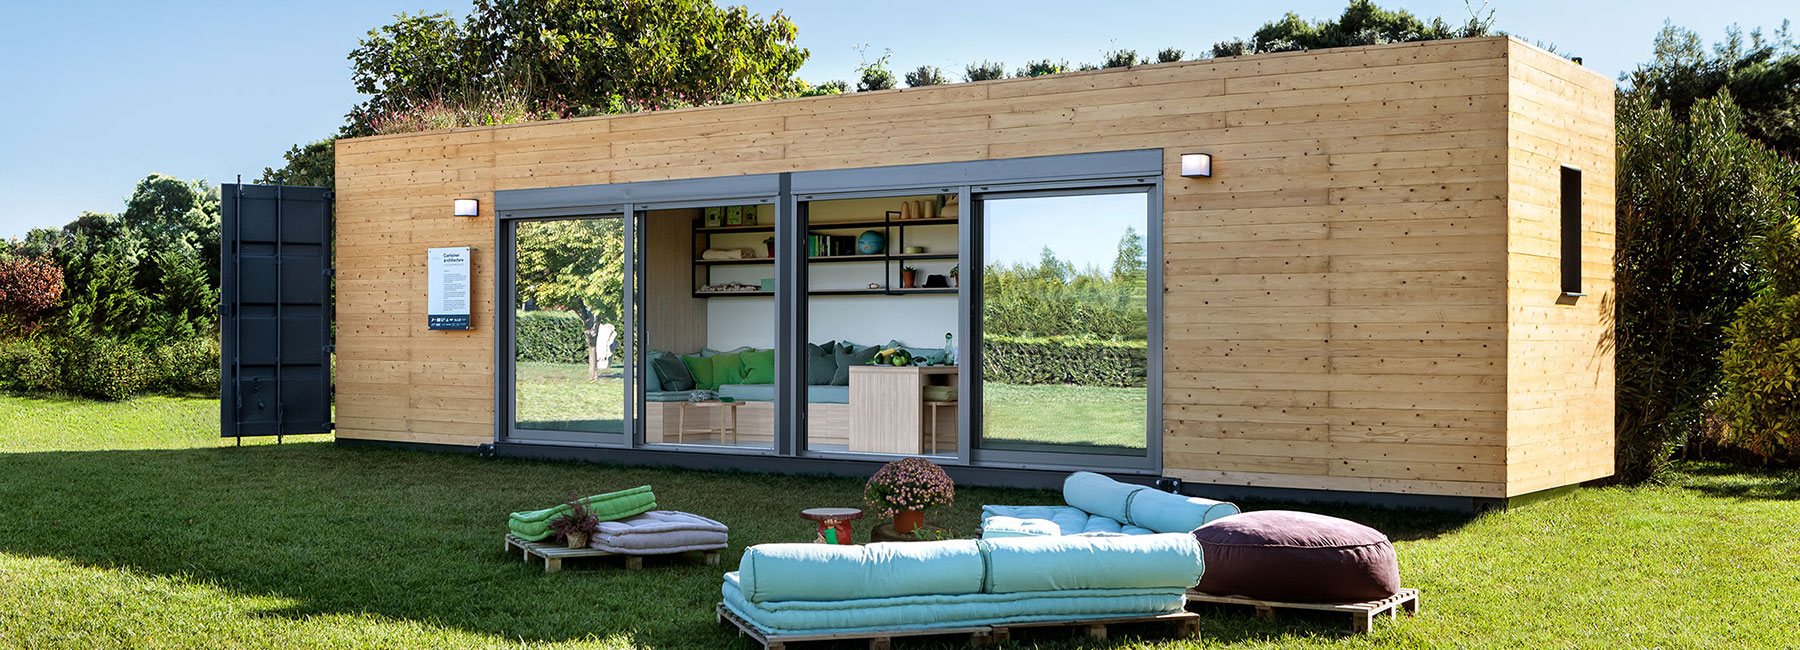 New modular shipping container home is also energy-efficient